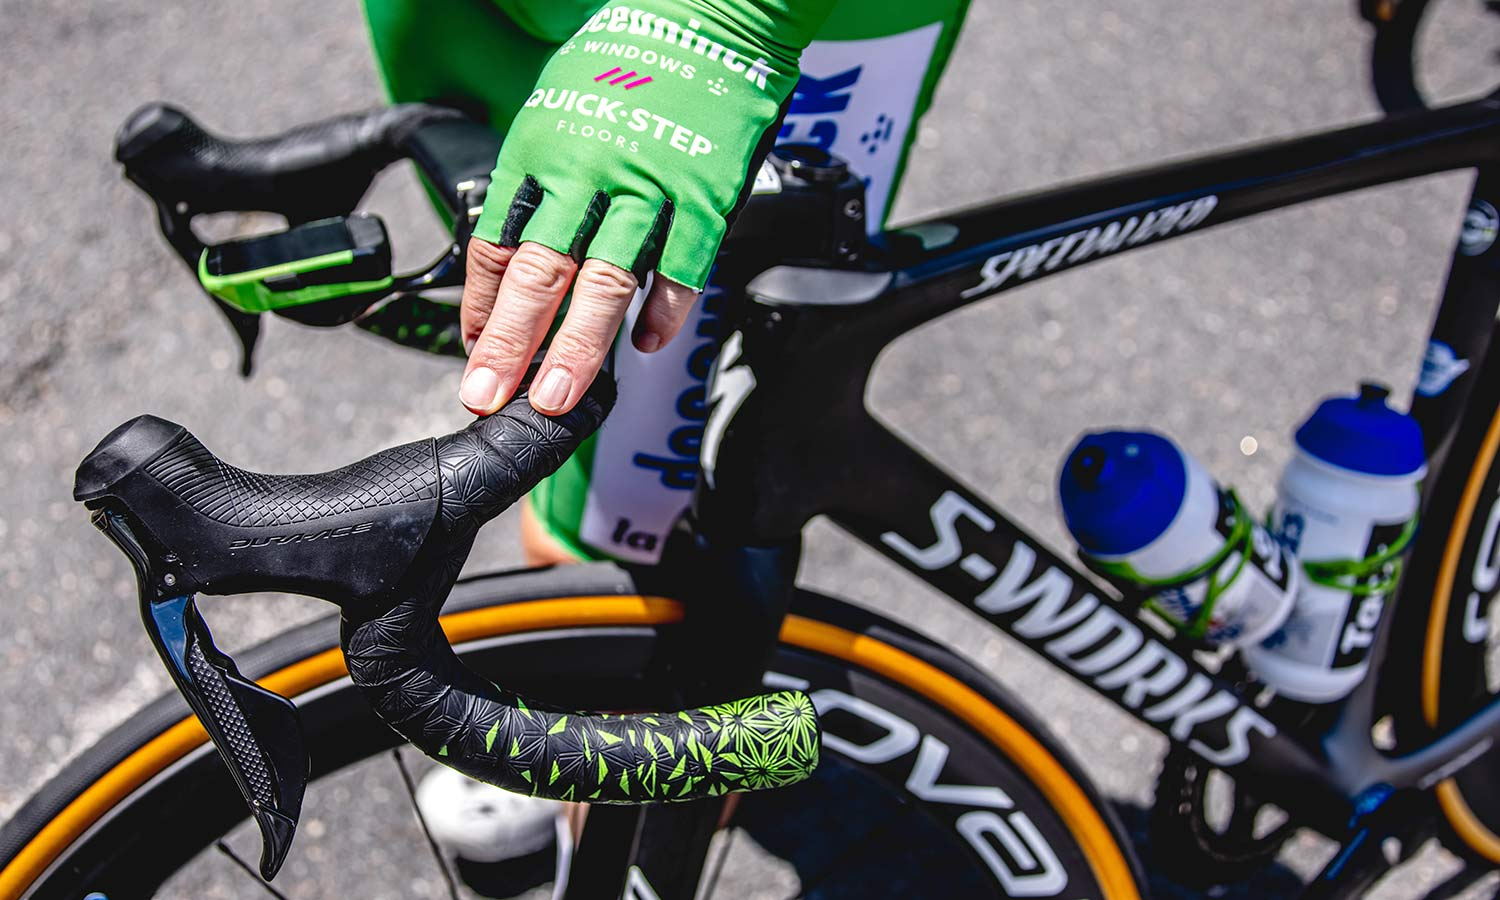 2021 Mark Cavendish 3x Tour de France stage winning green sprinter jersey Specialized S-Works Tarmac SL7, photo by Wout Beel